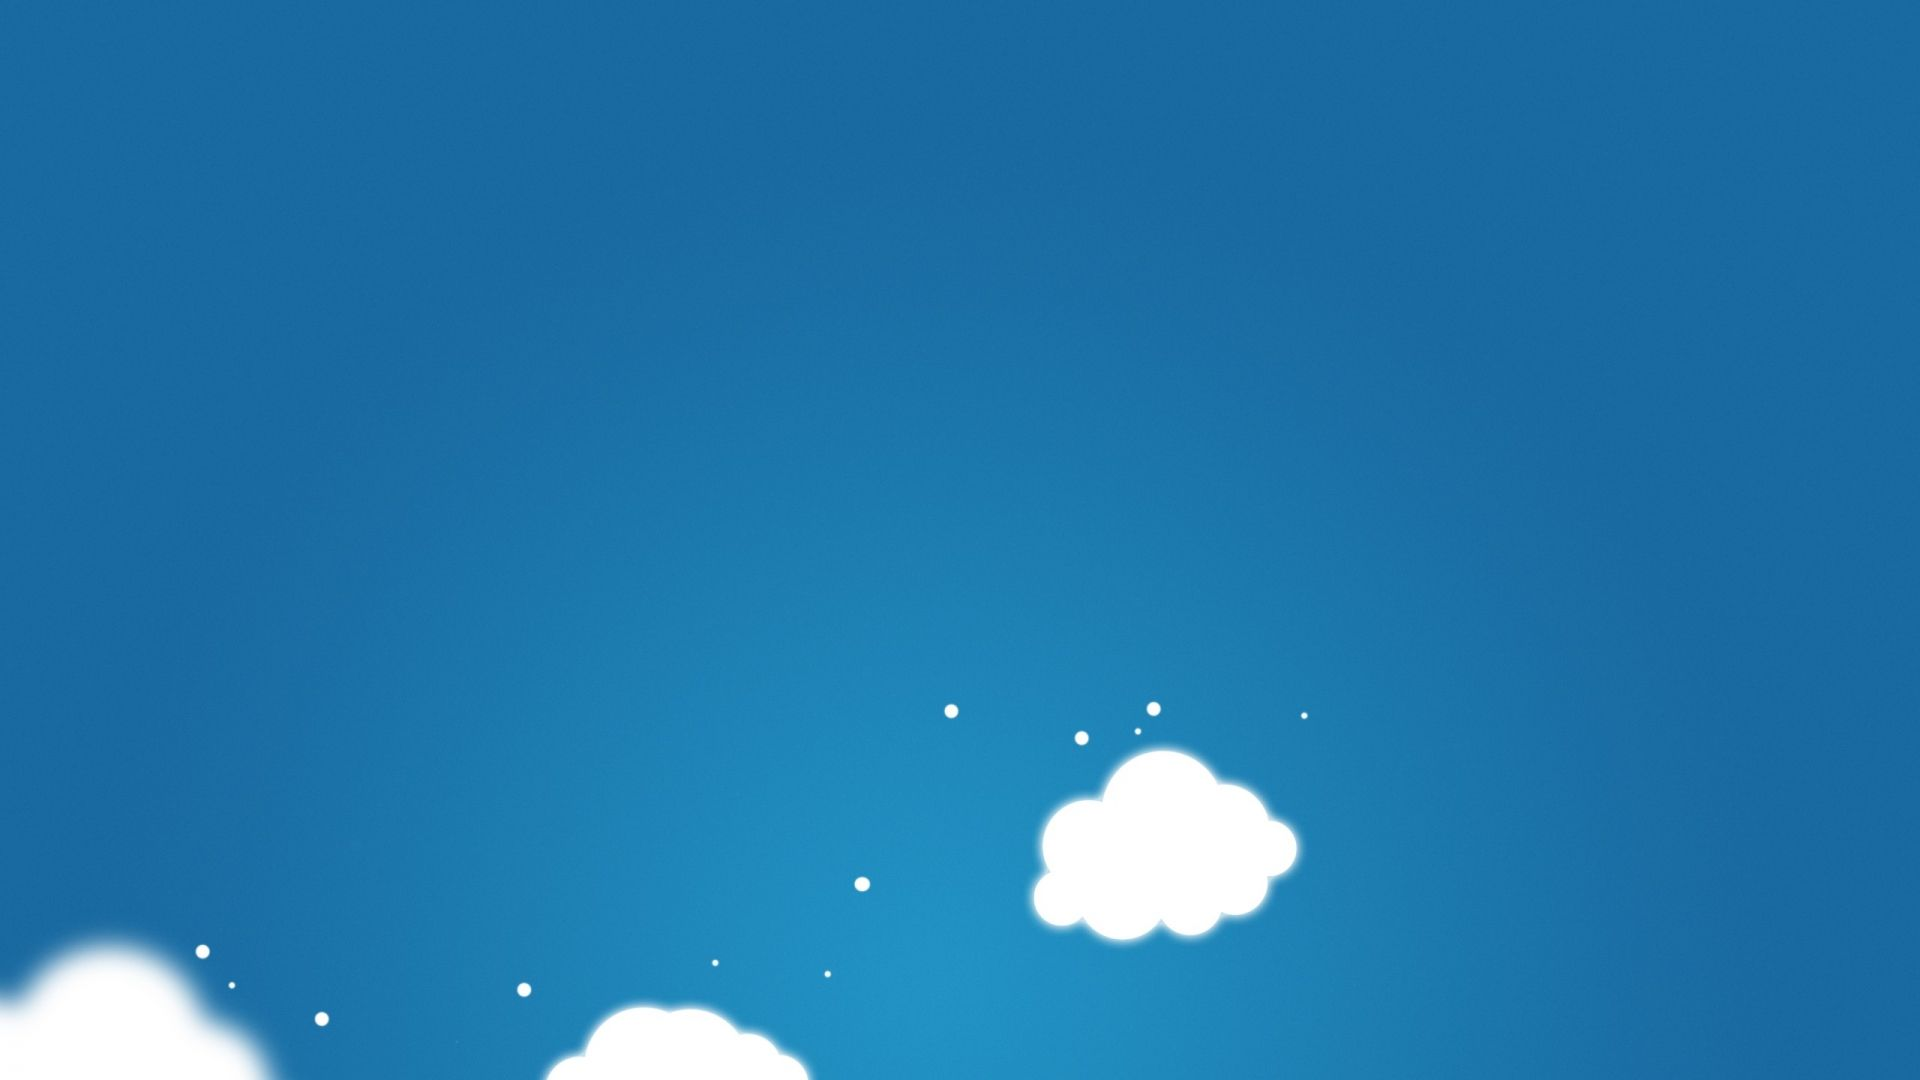 clouds hd wallpaper minimalist -#main